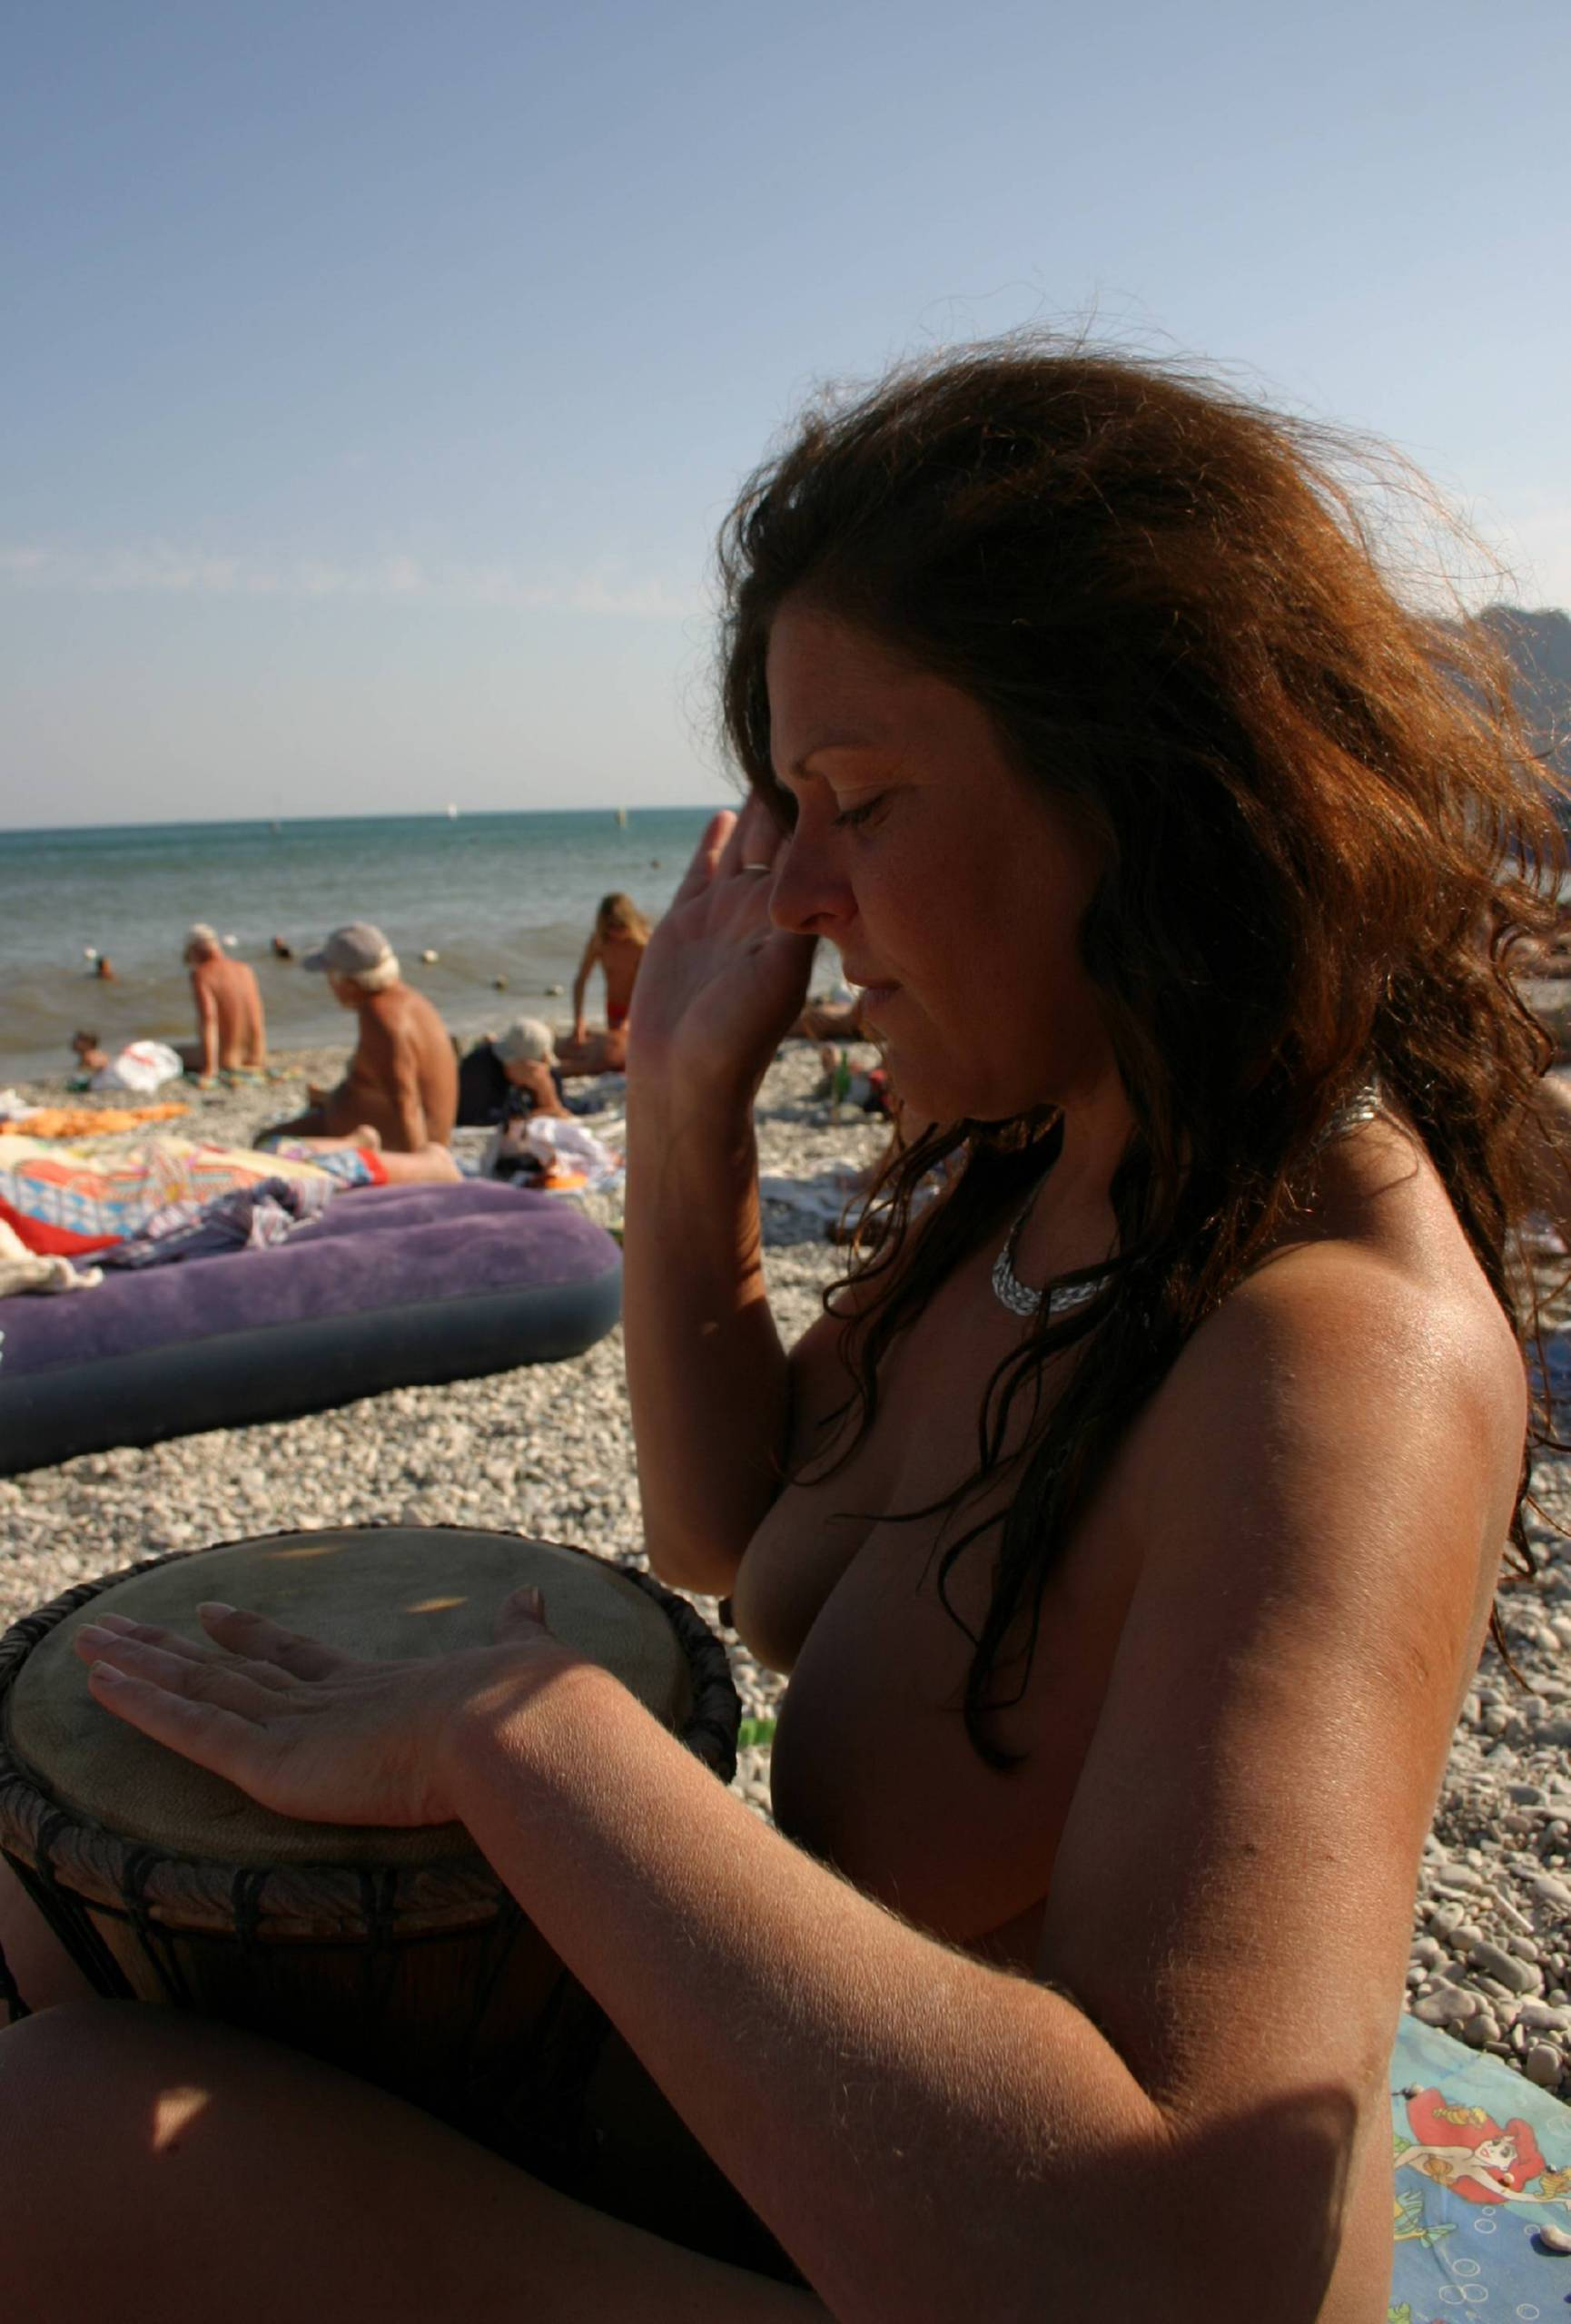 Nudist Pictures Beach and Night Profiles - 2